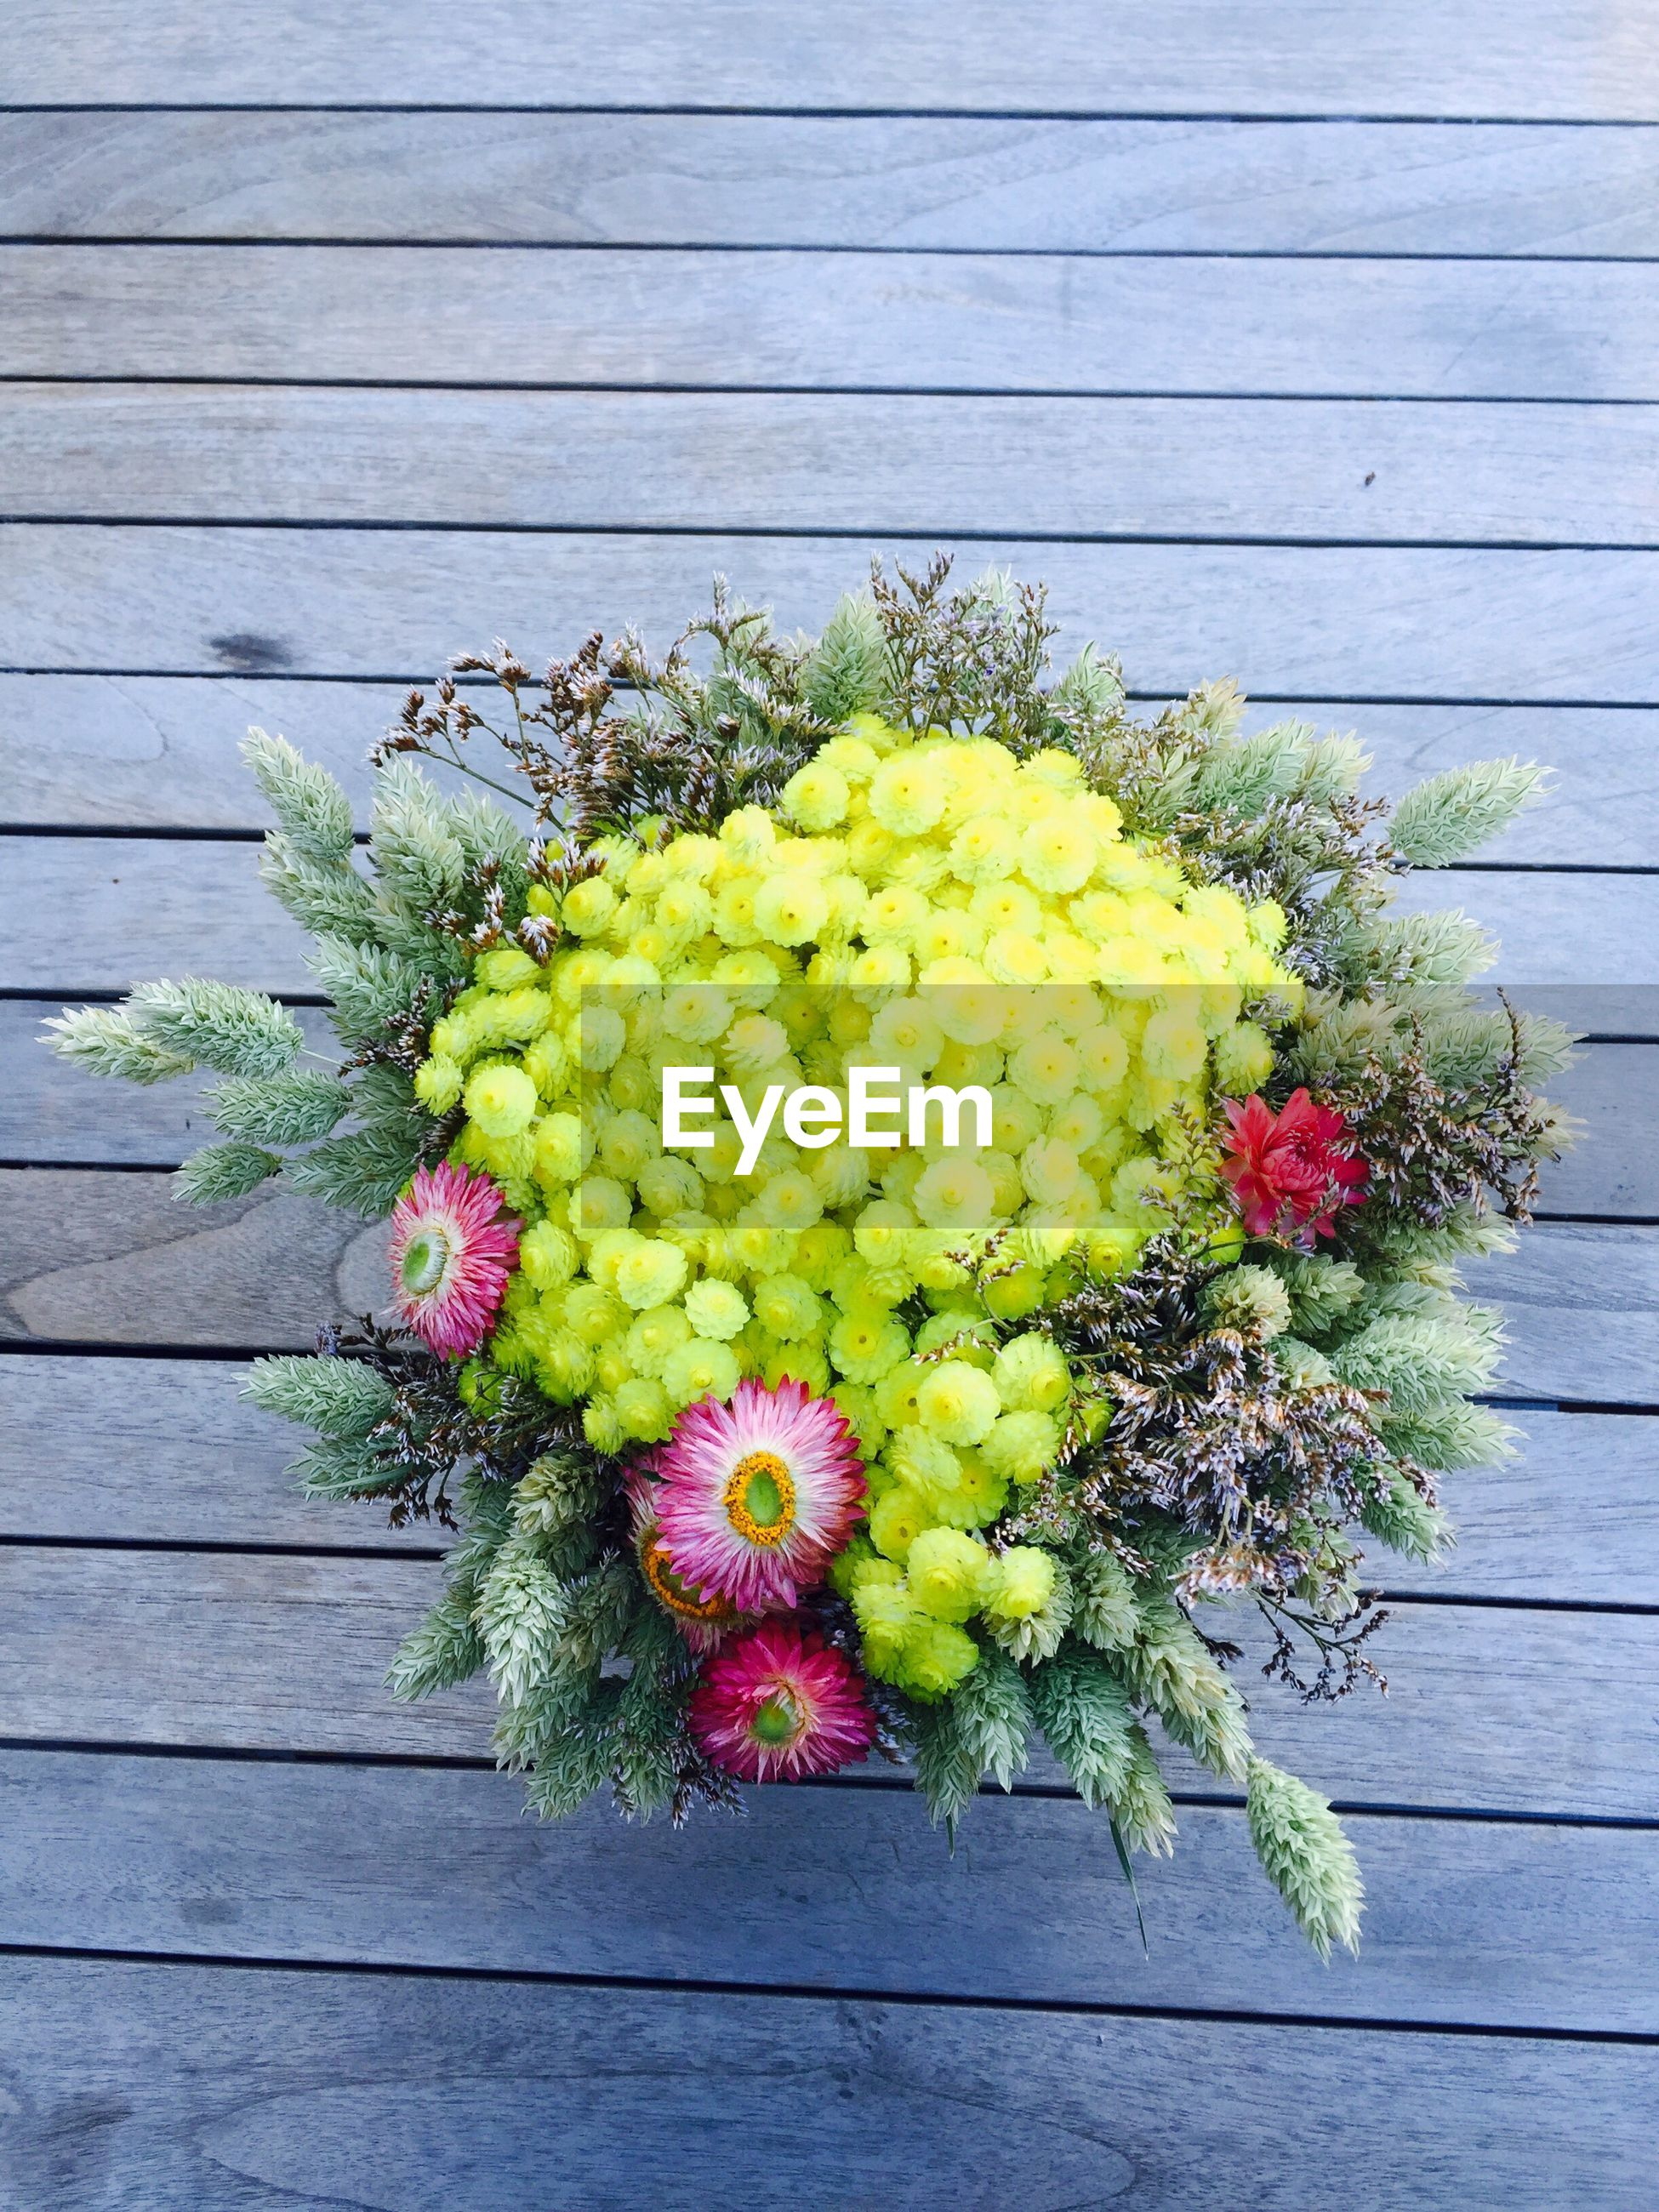 flower, freshness, fragility, wood - material, growth, multi colored, bunch of flowers, high angle view, plant, beauty in nature, wooden, bouquet, flower head, nature, day, yellow, petal, full frame, colorful, vibrant color, abundance, in bloom, red, springtime, wood paneling, outdoors, large group of objects, flower arrangement, arrangement